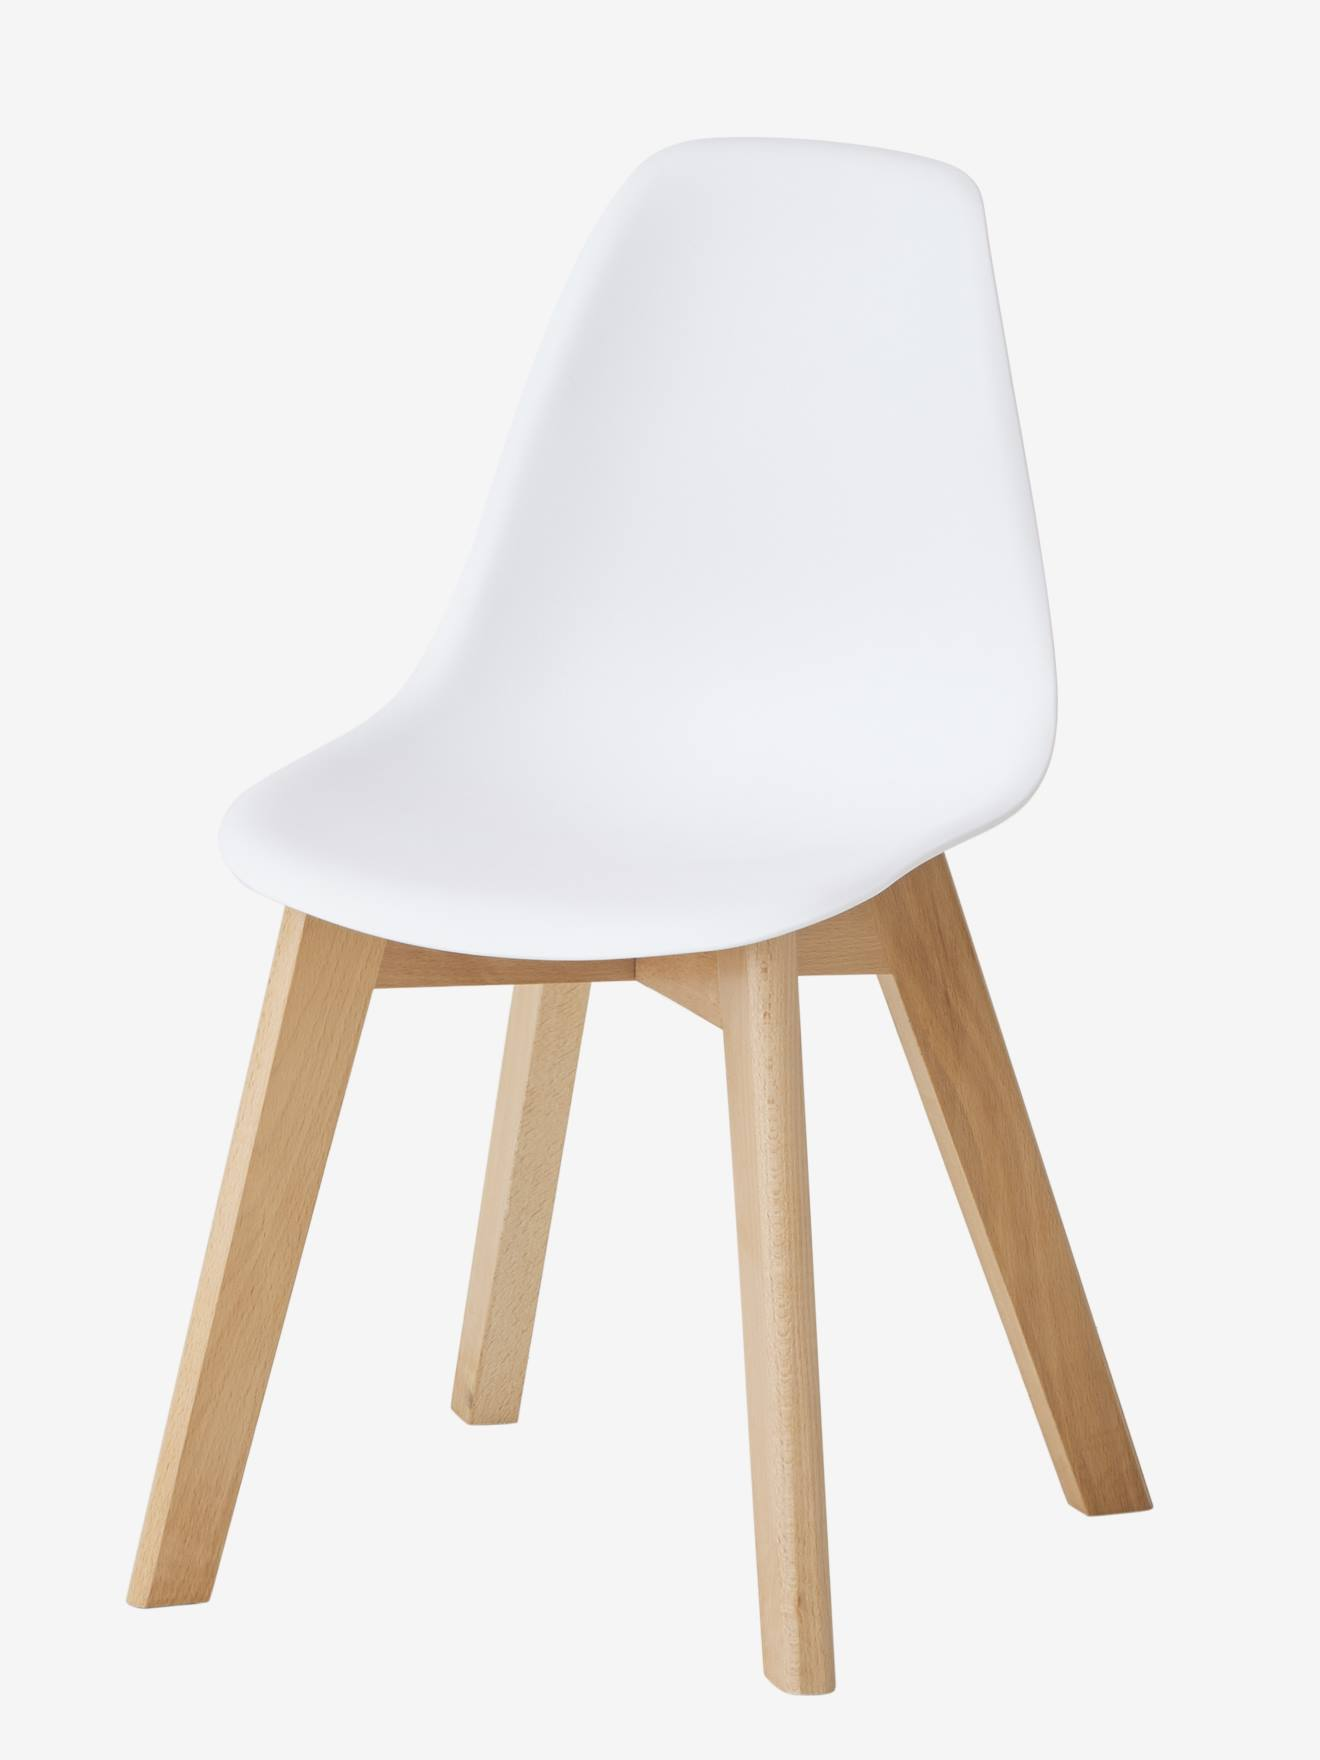 Chaise Spécial Maternelle Scandinave, Assise H 33 Cm   Blanc